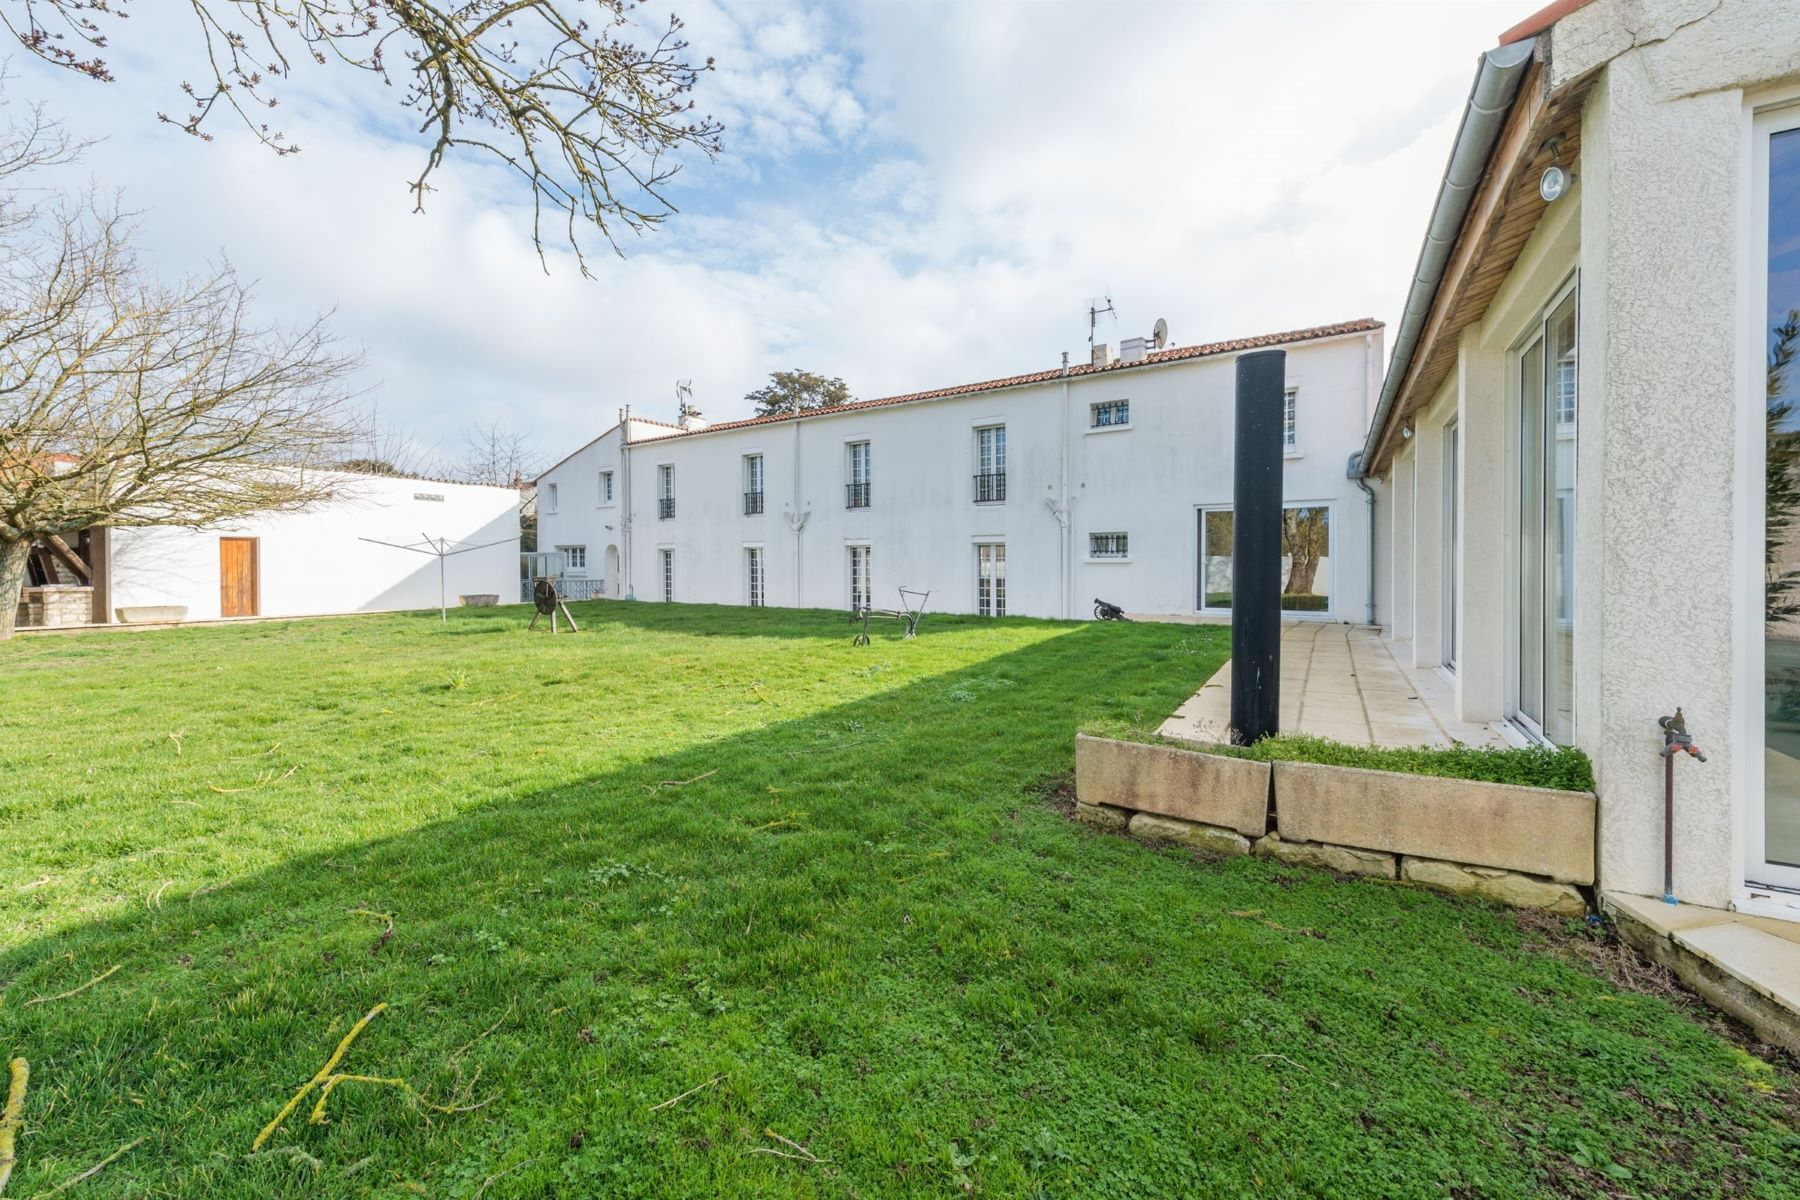 Single Family Homes for Sale at Old mill of character Aigrefeuille D Aunis, Poitou-Charentes 17290 France